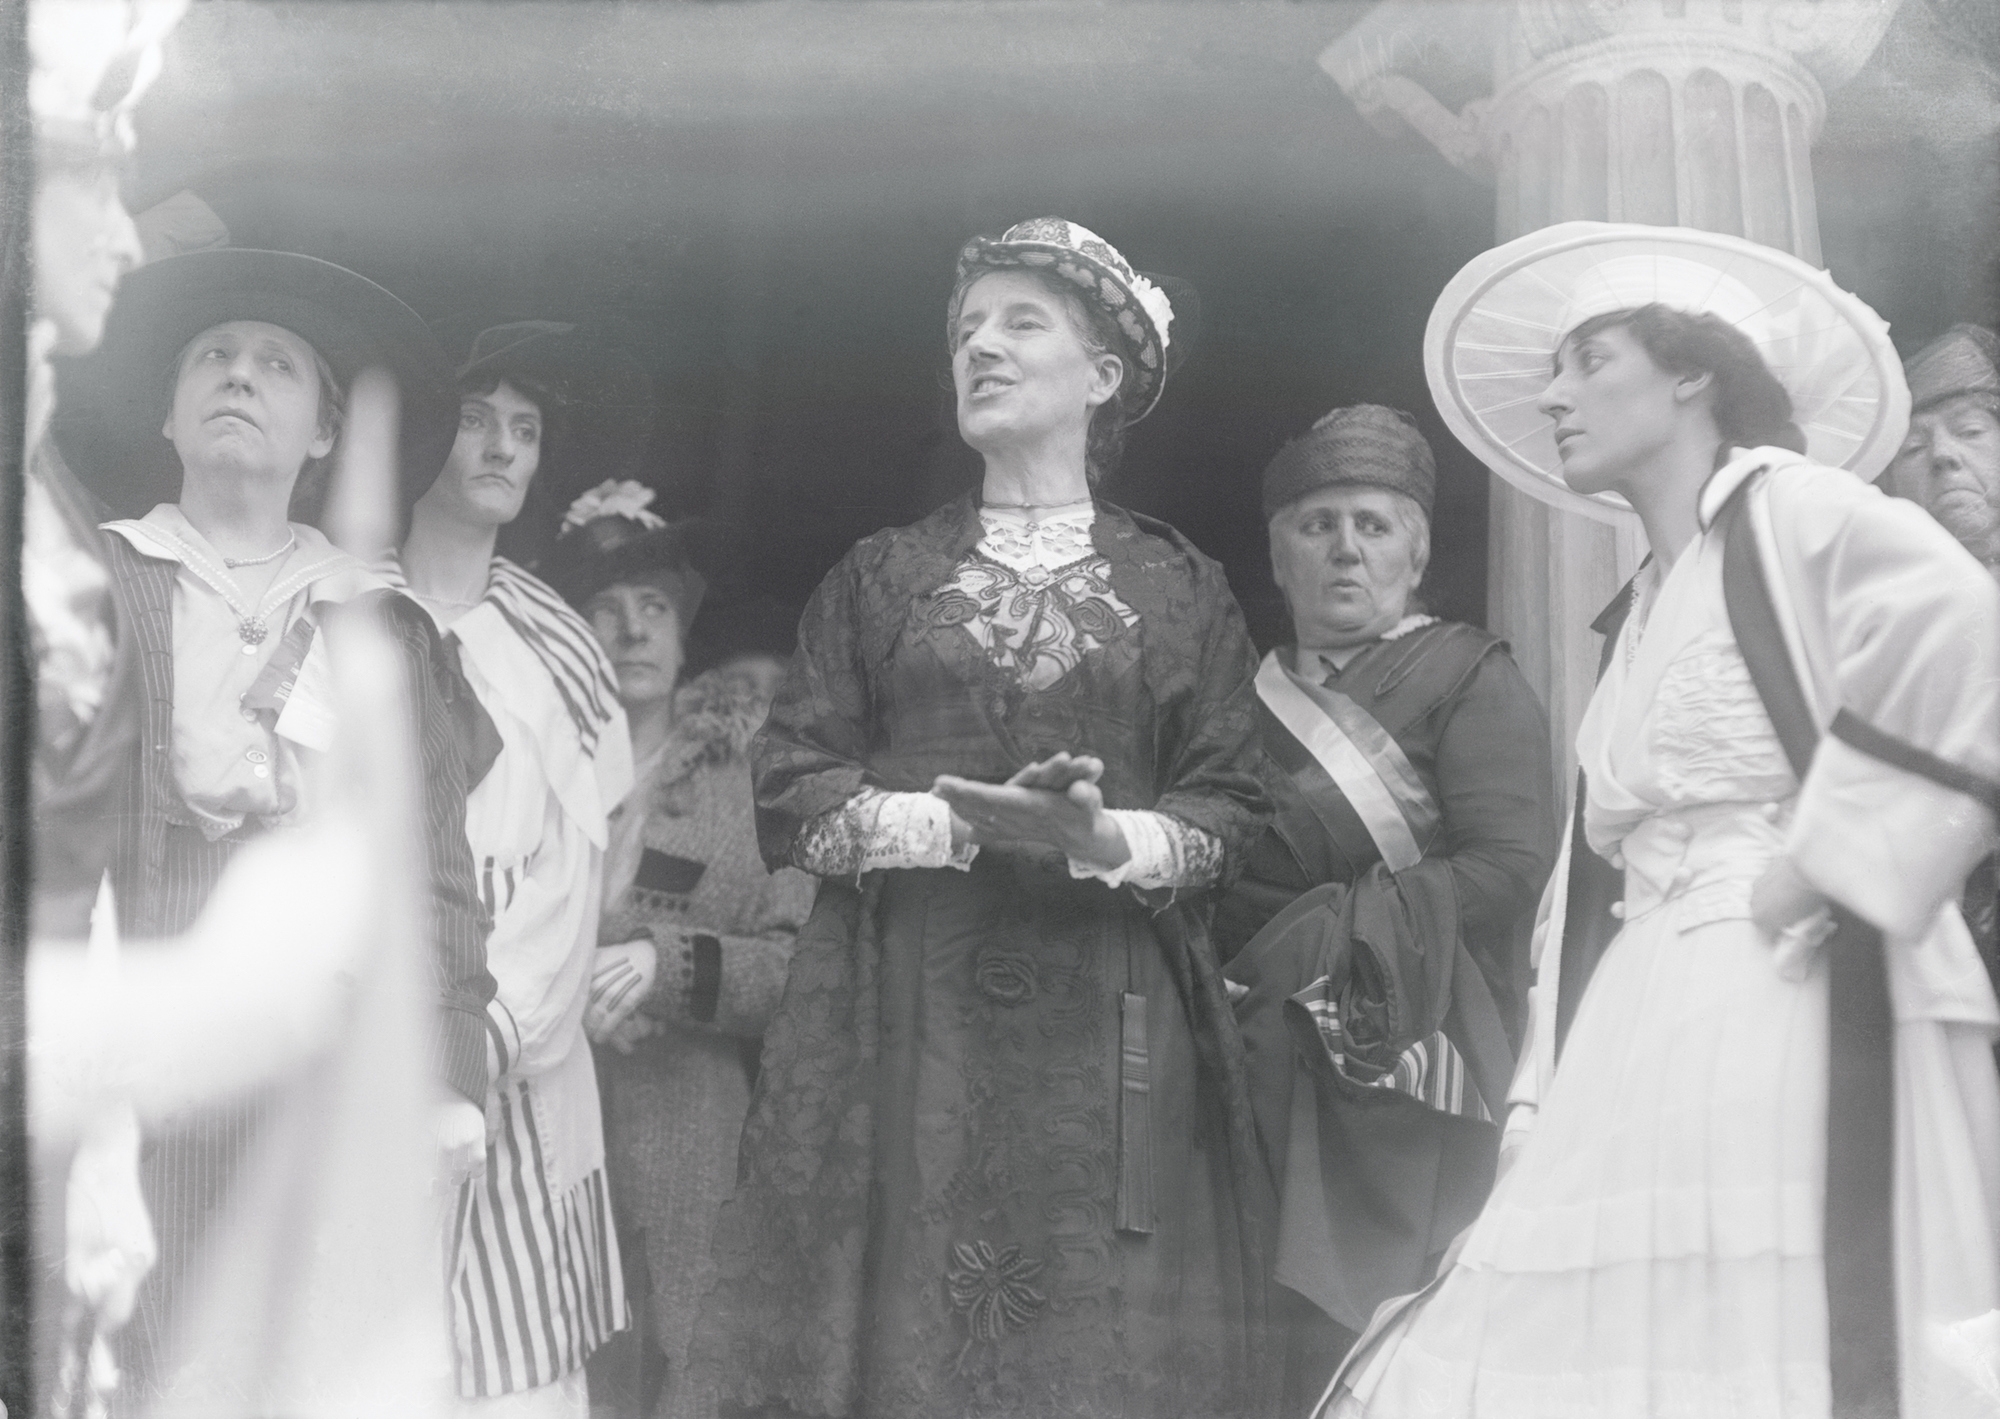 Charlotte Perkins Gilman, a feminist activist from the late 19th and early 20th centuries, promoted new architecture to advance women in society.